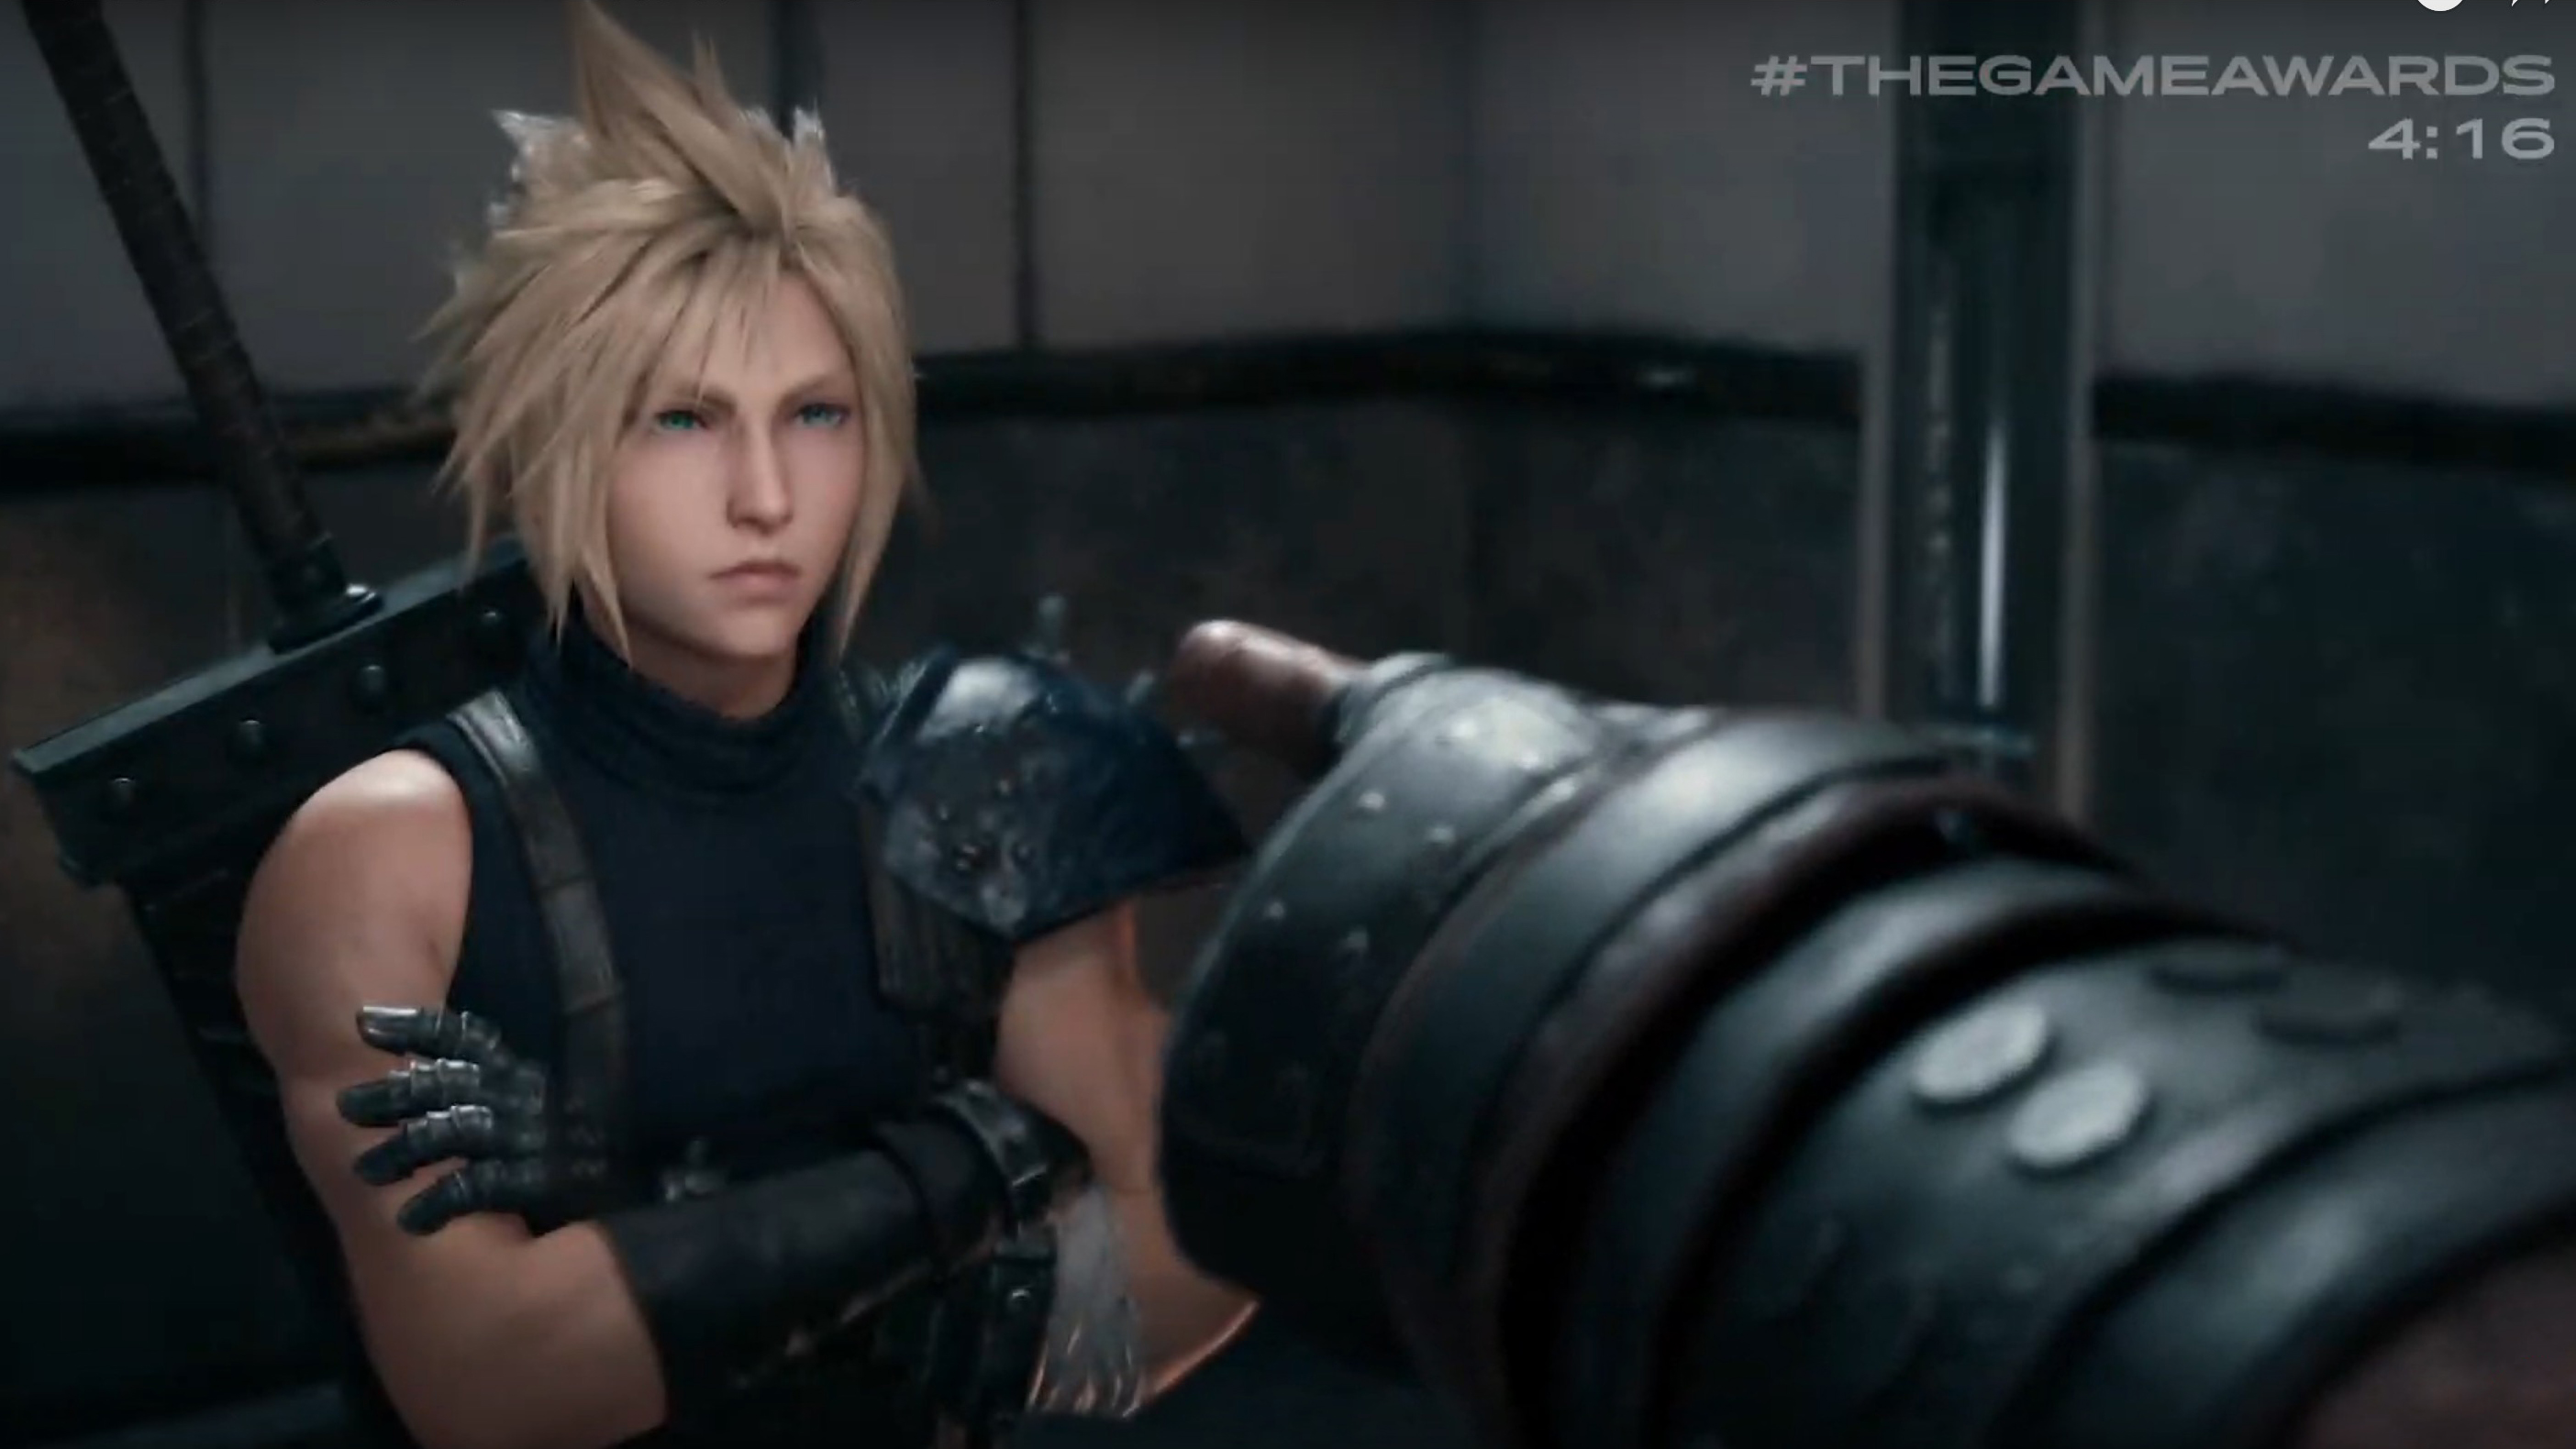 The Game Awards 2019 Final Fantasy 7 Remake trailer highlights Cloud Strife